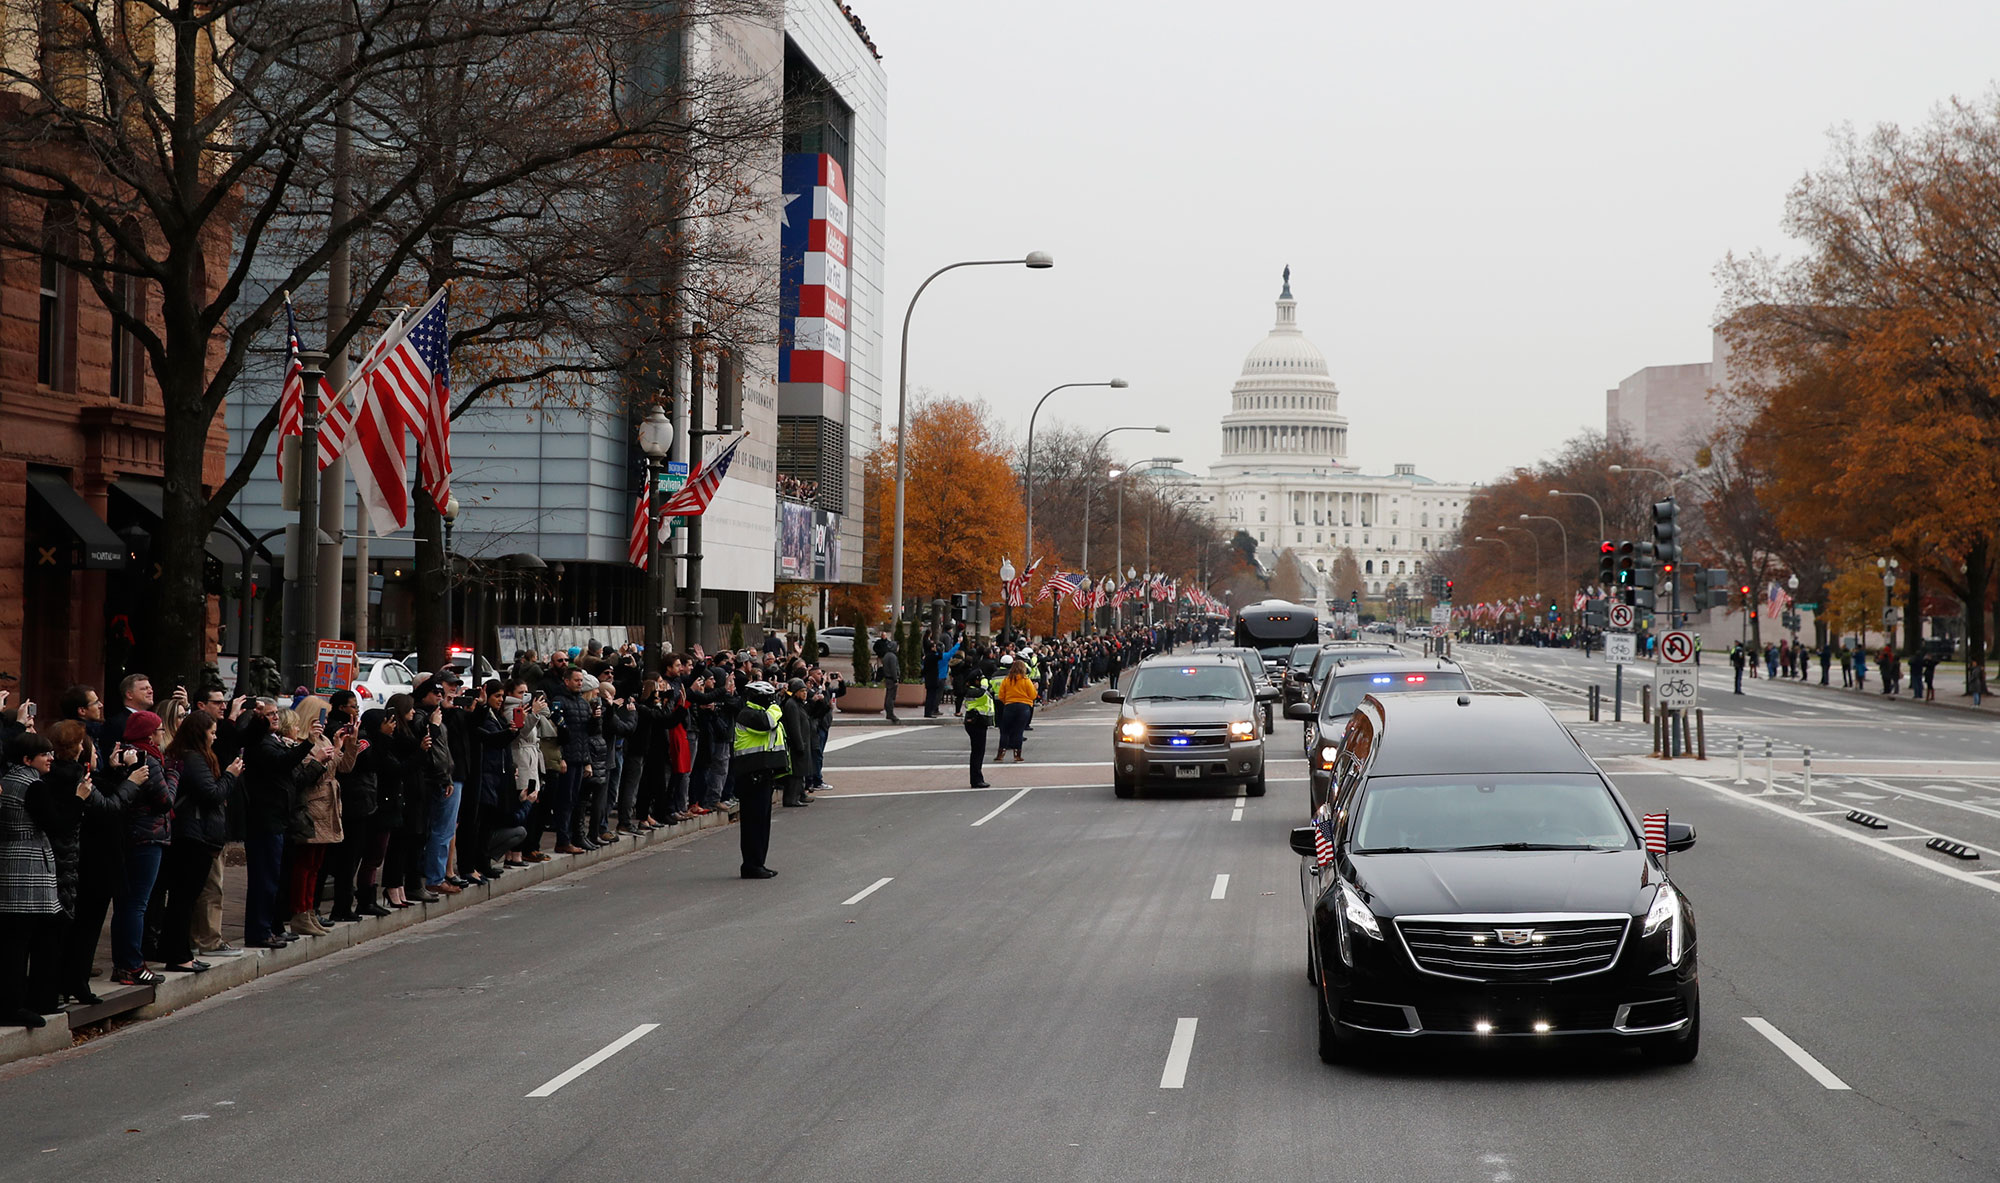 "<div class=""meta image-caption""><div class=""origin-logo origin-image none""><span>none</span></div><span class=""caption-text"">People line Pennsylvania Ave. as the hearse passes by carrying the flag-draped casket of former President George H.W. Bush as it drives away from the Capitol. (Alex Brandon, Pool/AP Photo)</span></div>"